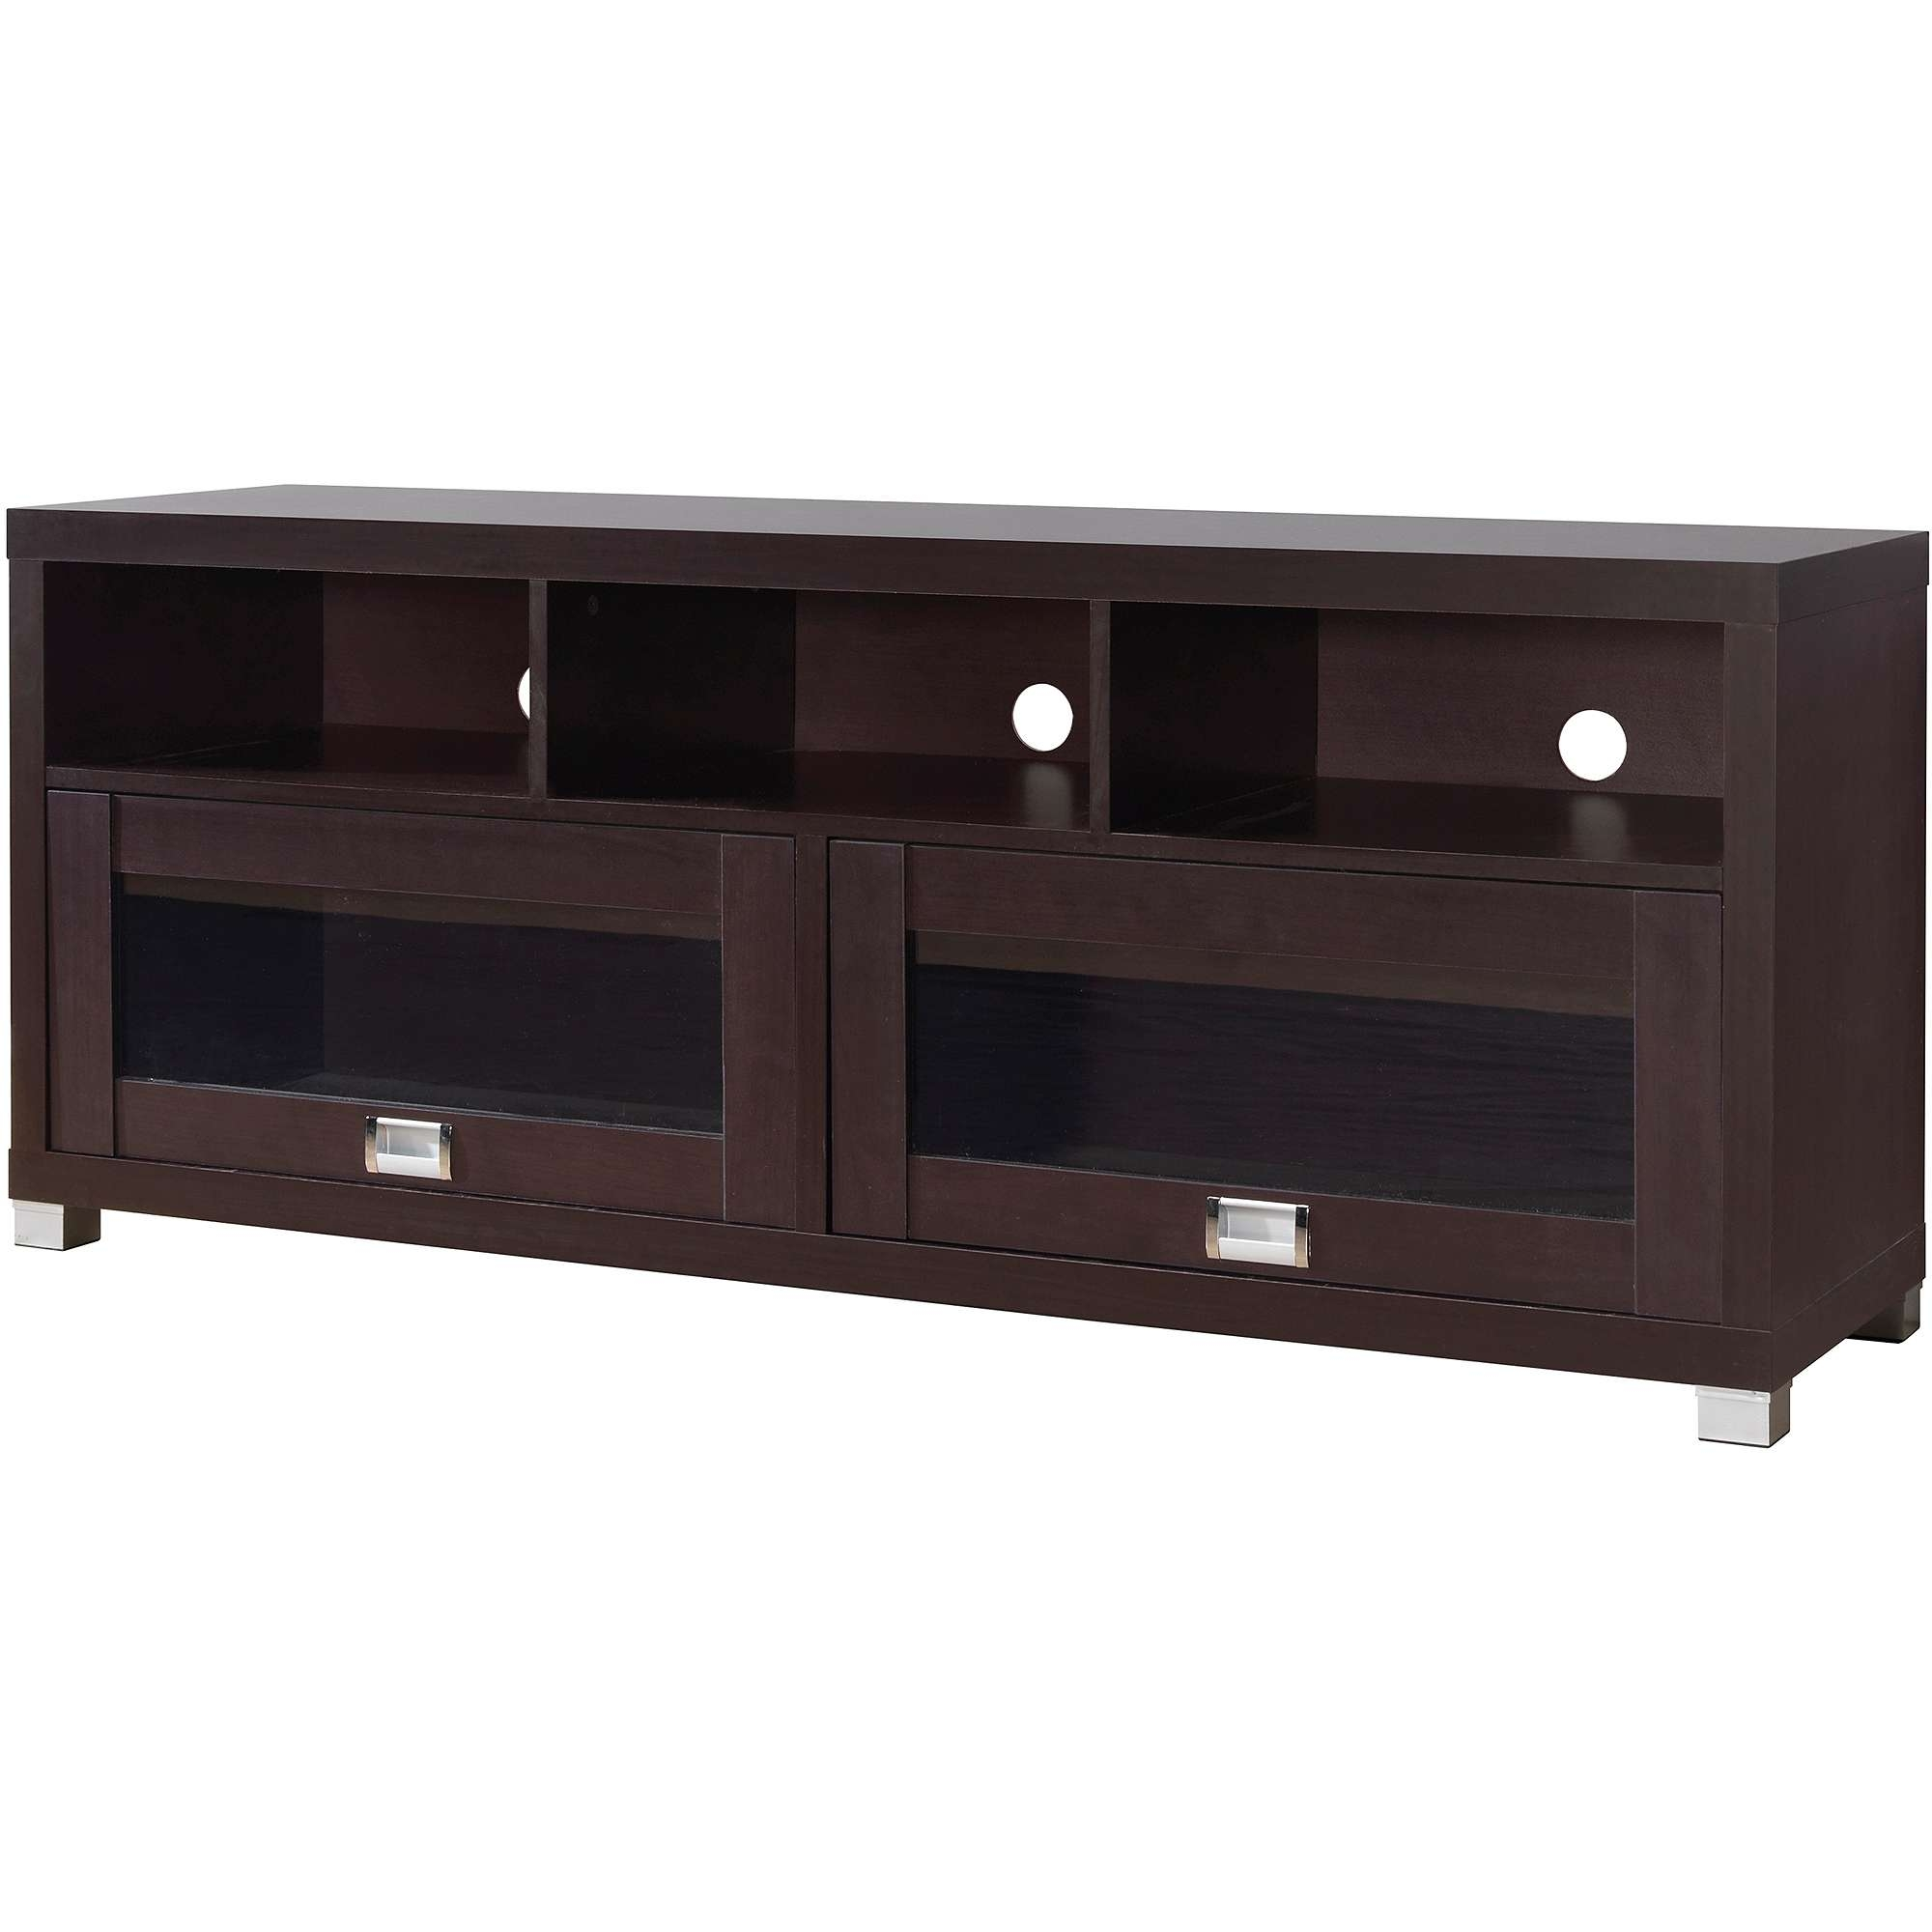 Espresso Tv Stands Pertaining To Expresso Tv Stands (View 6 of 15)